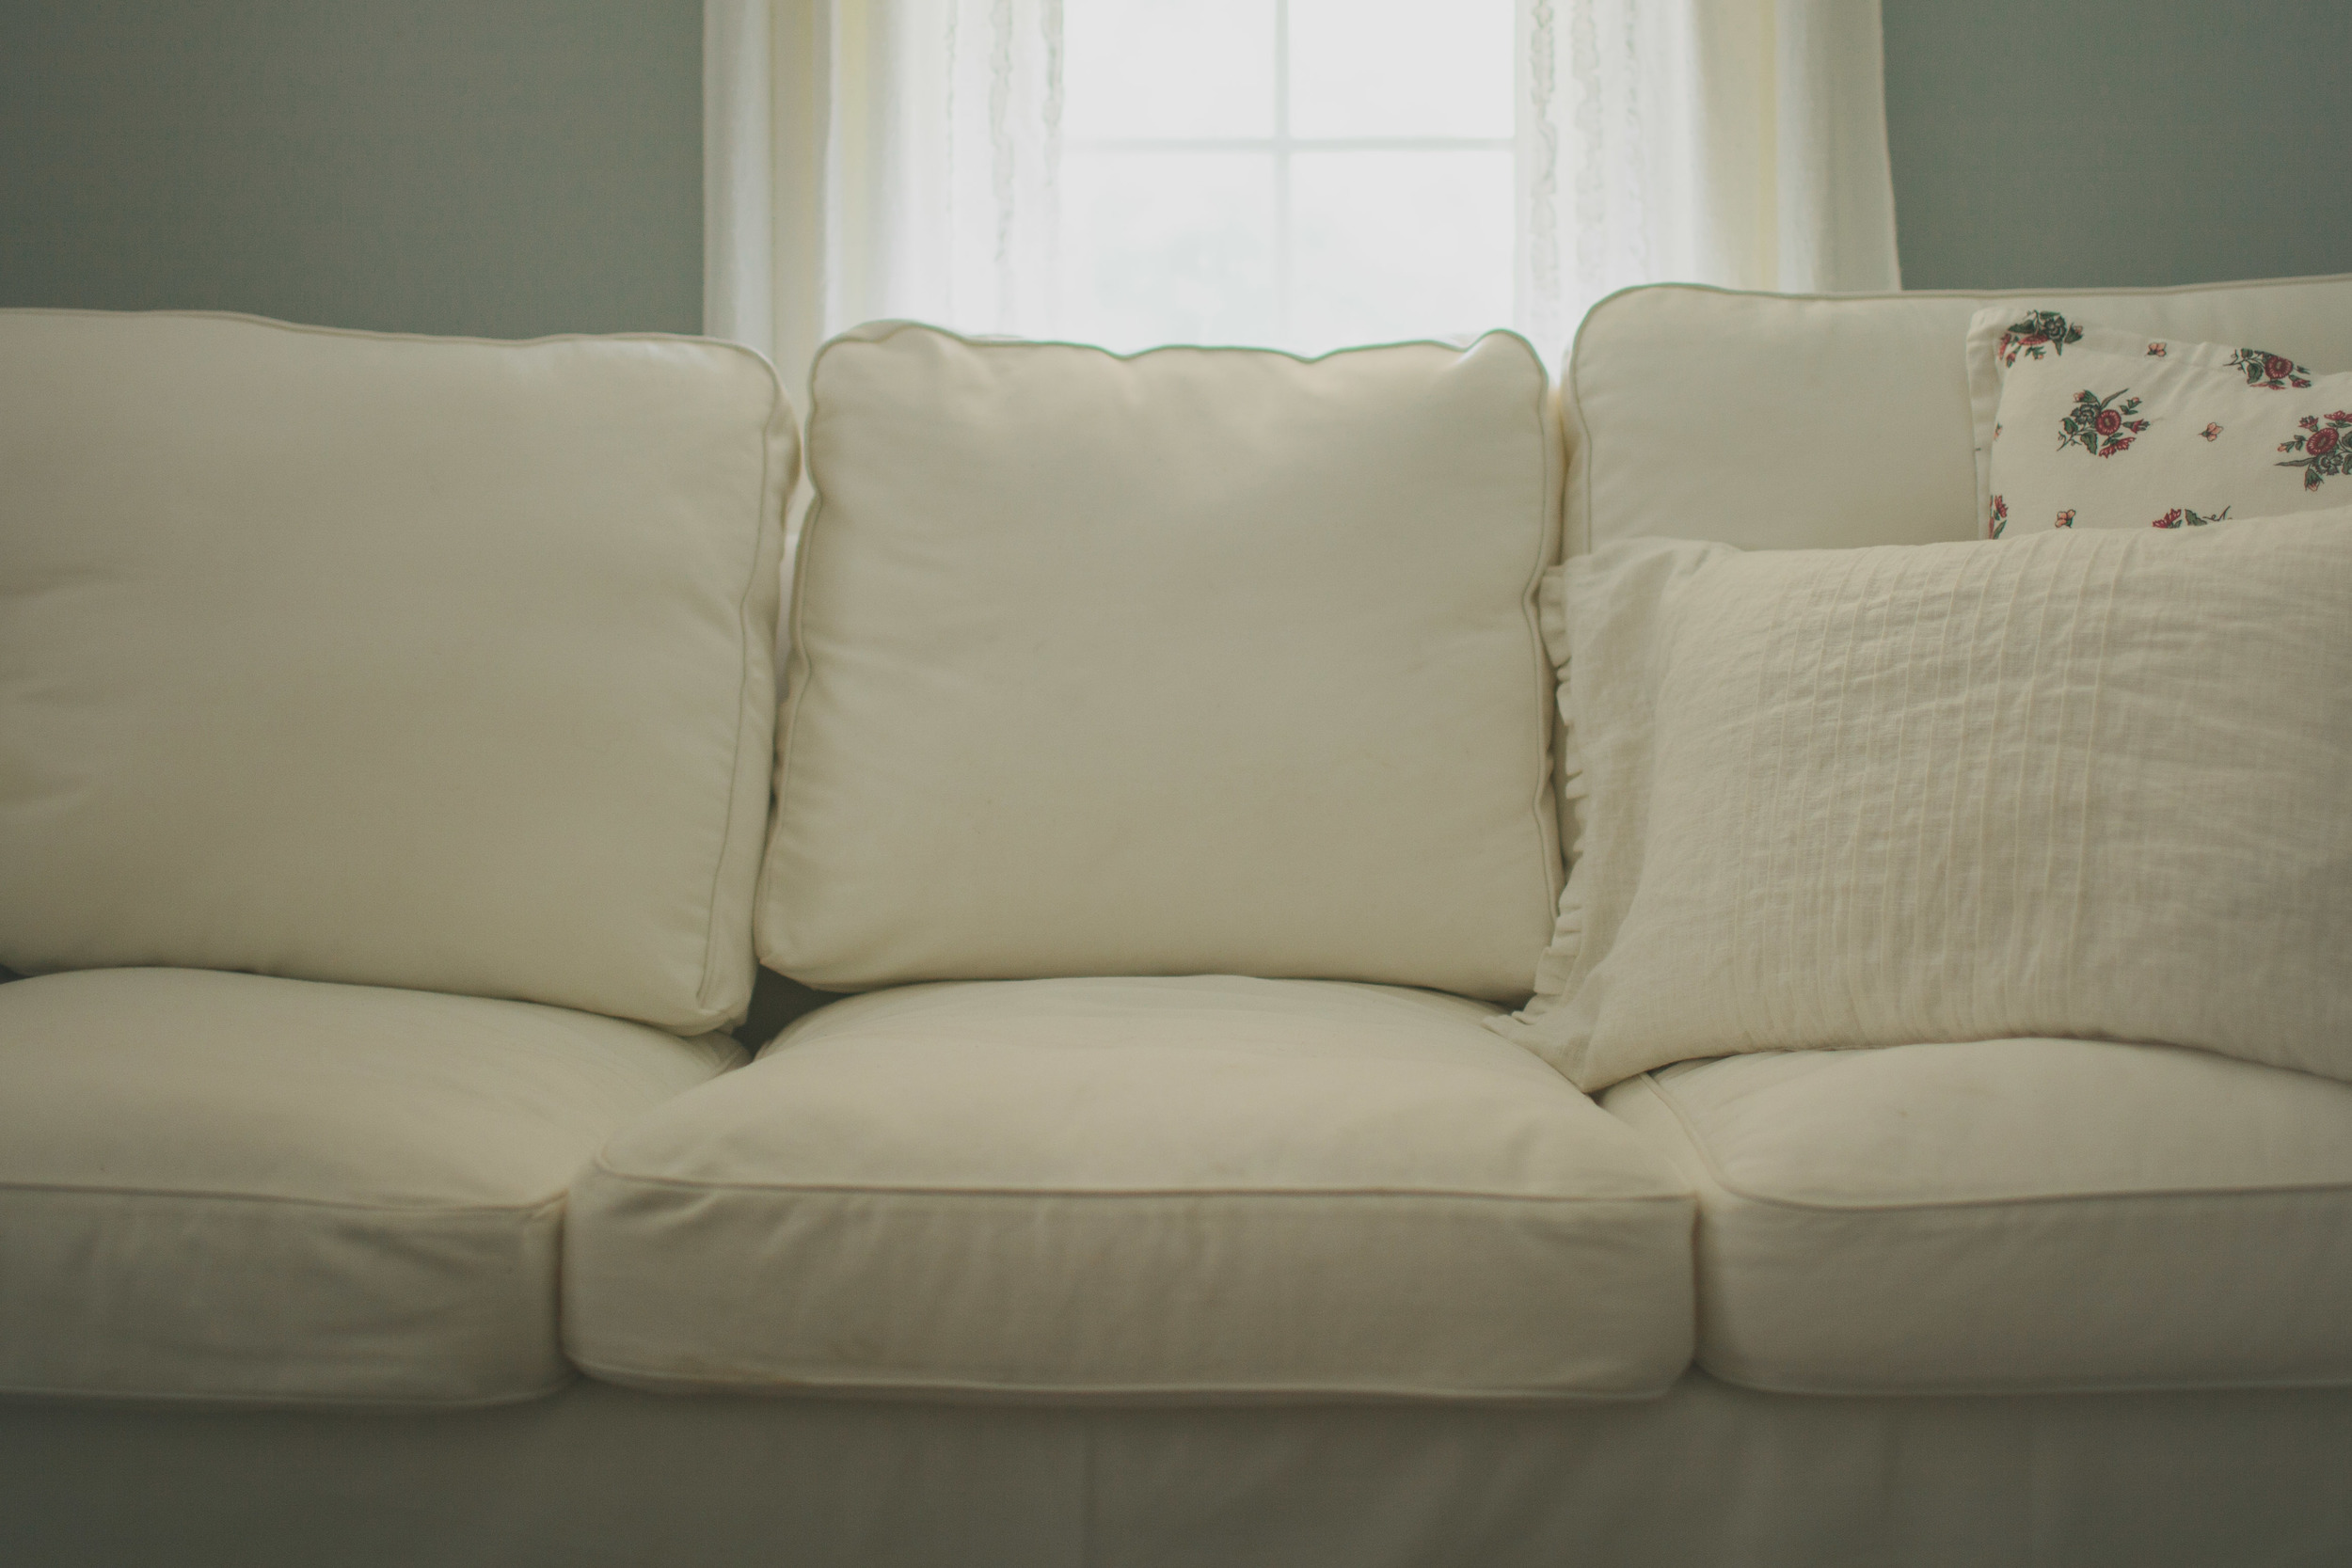 OurEKTORP Sofa (purchased May 2014) tested positive for the flame retardantTCPP.